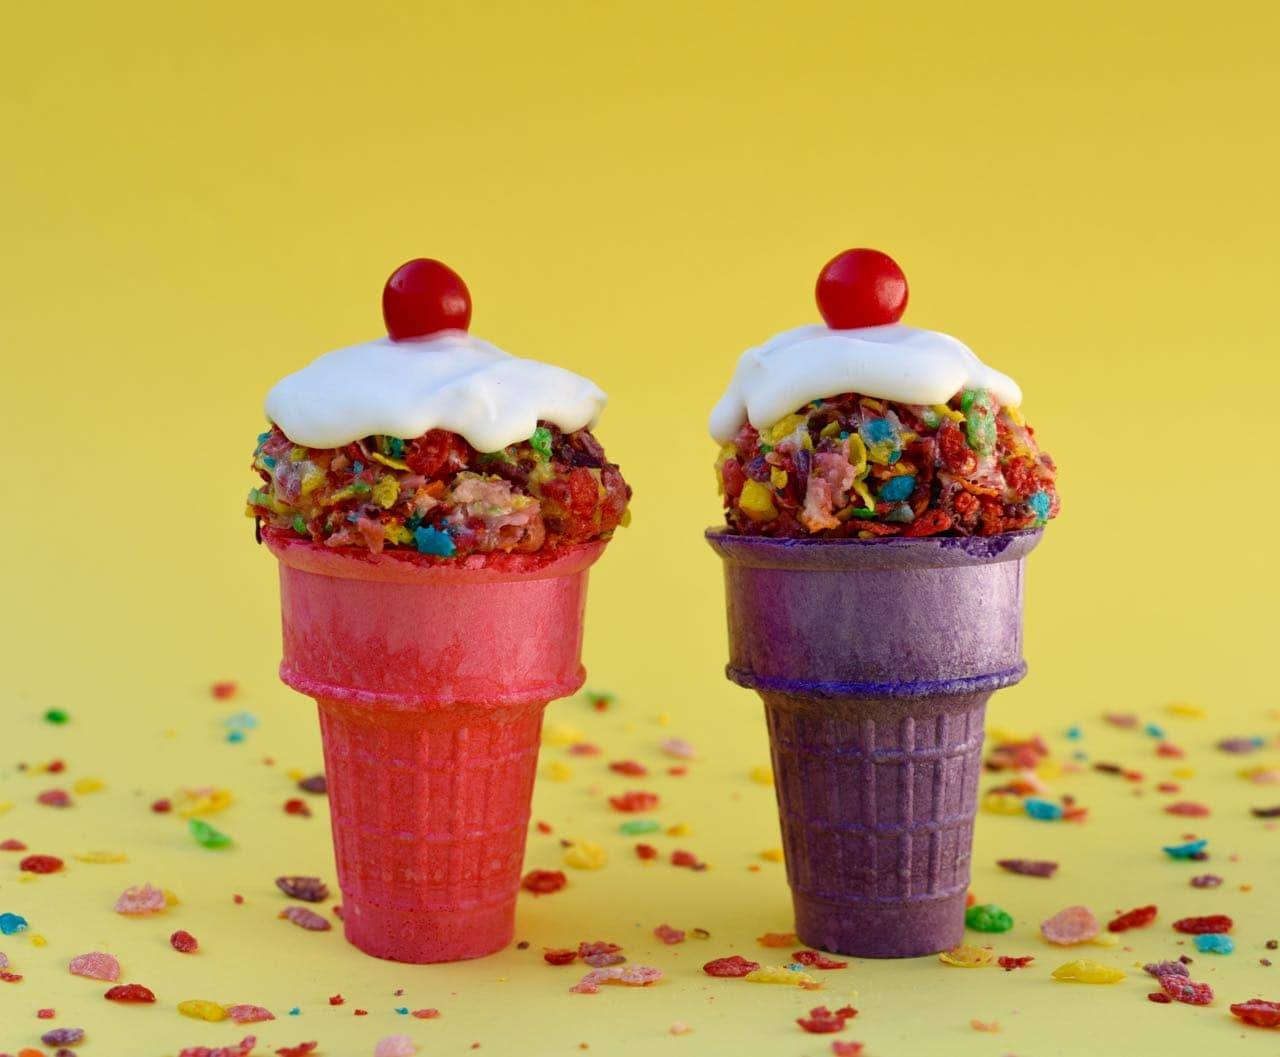 Fruity Pebbles Ice Cream Cones